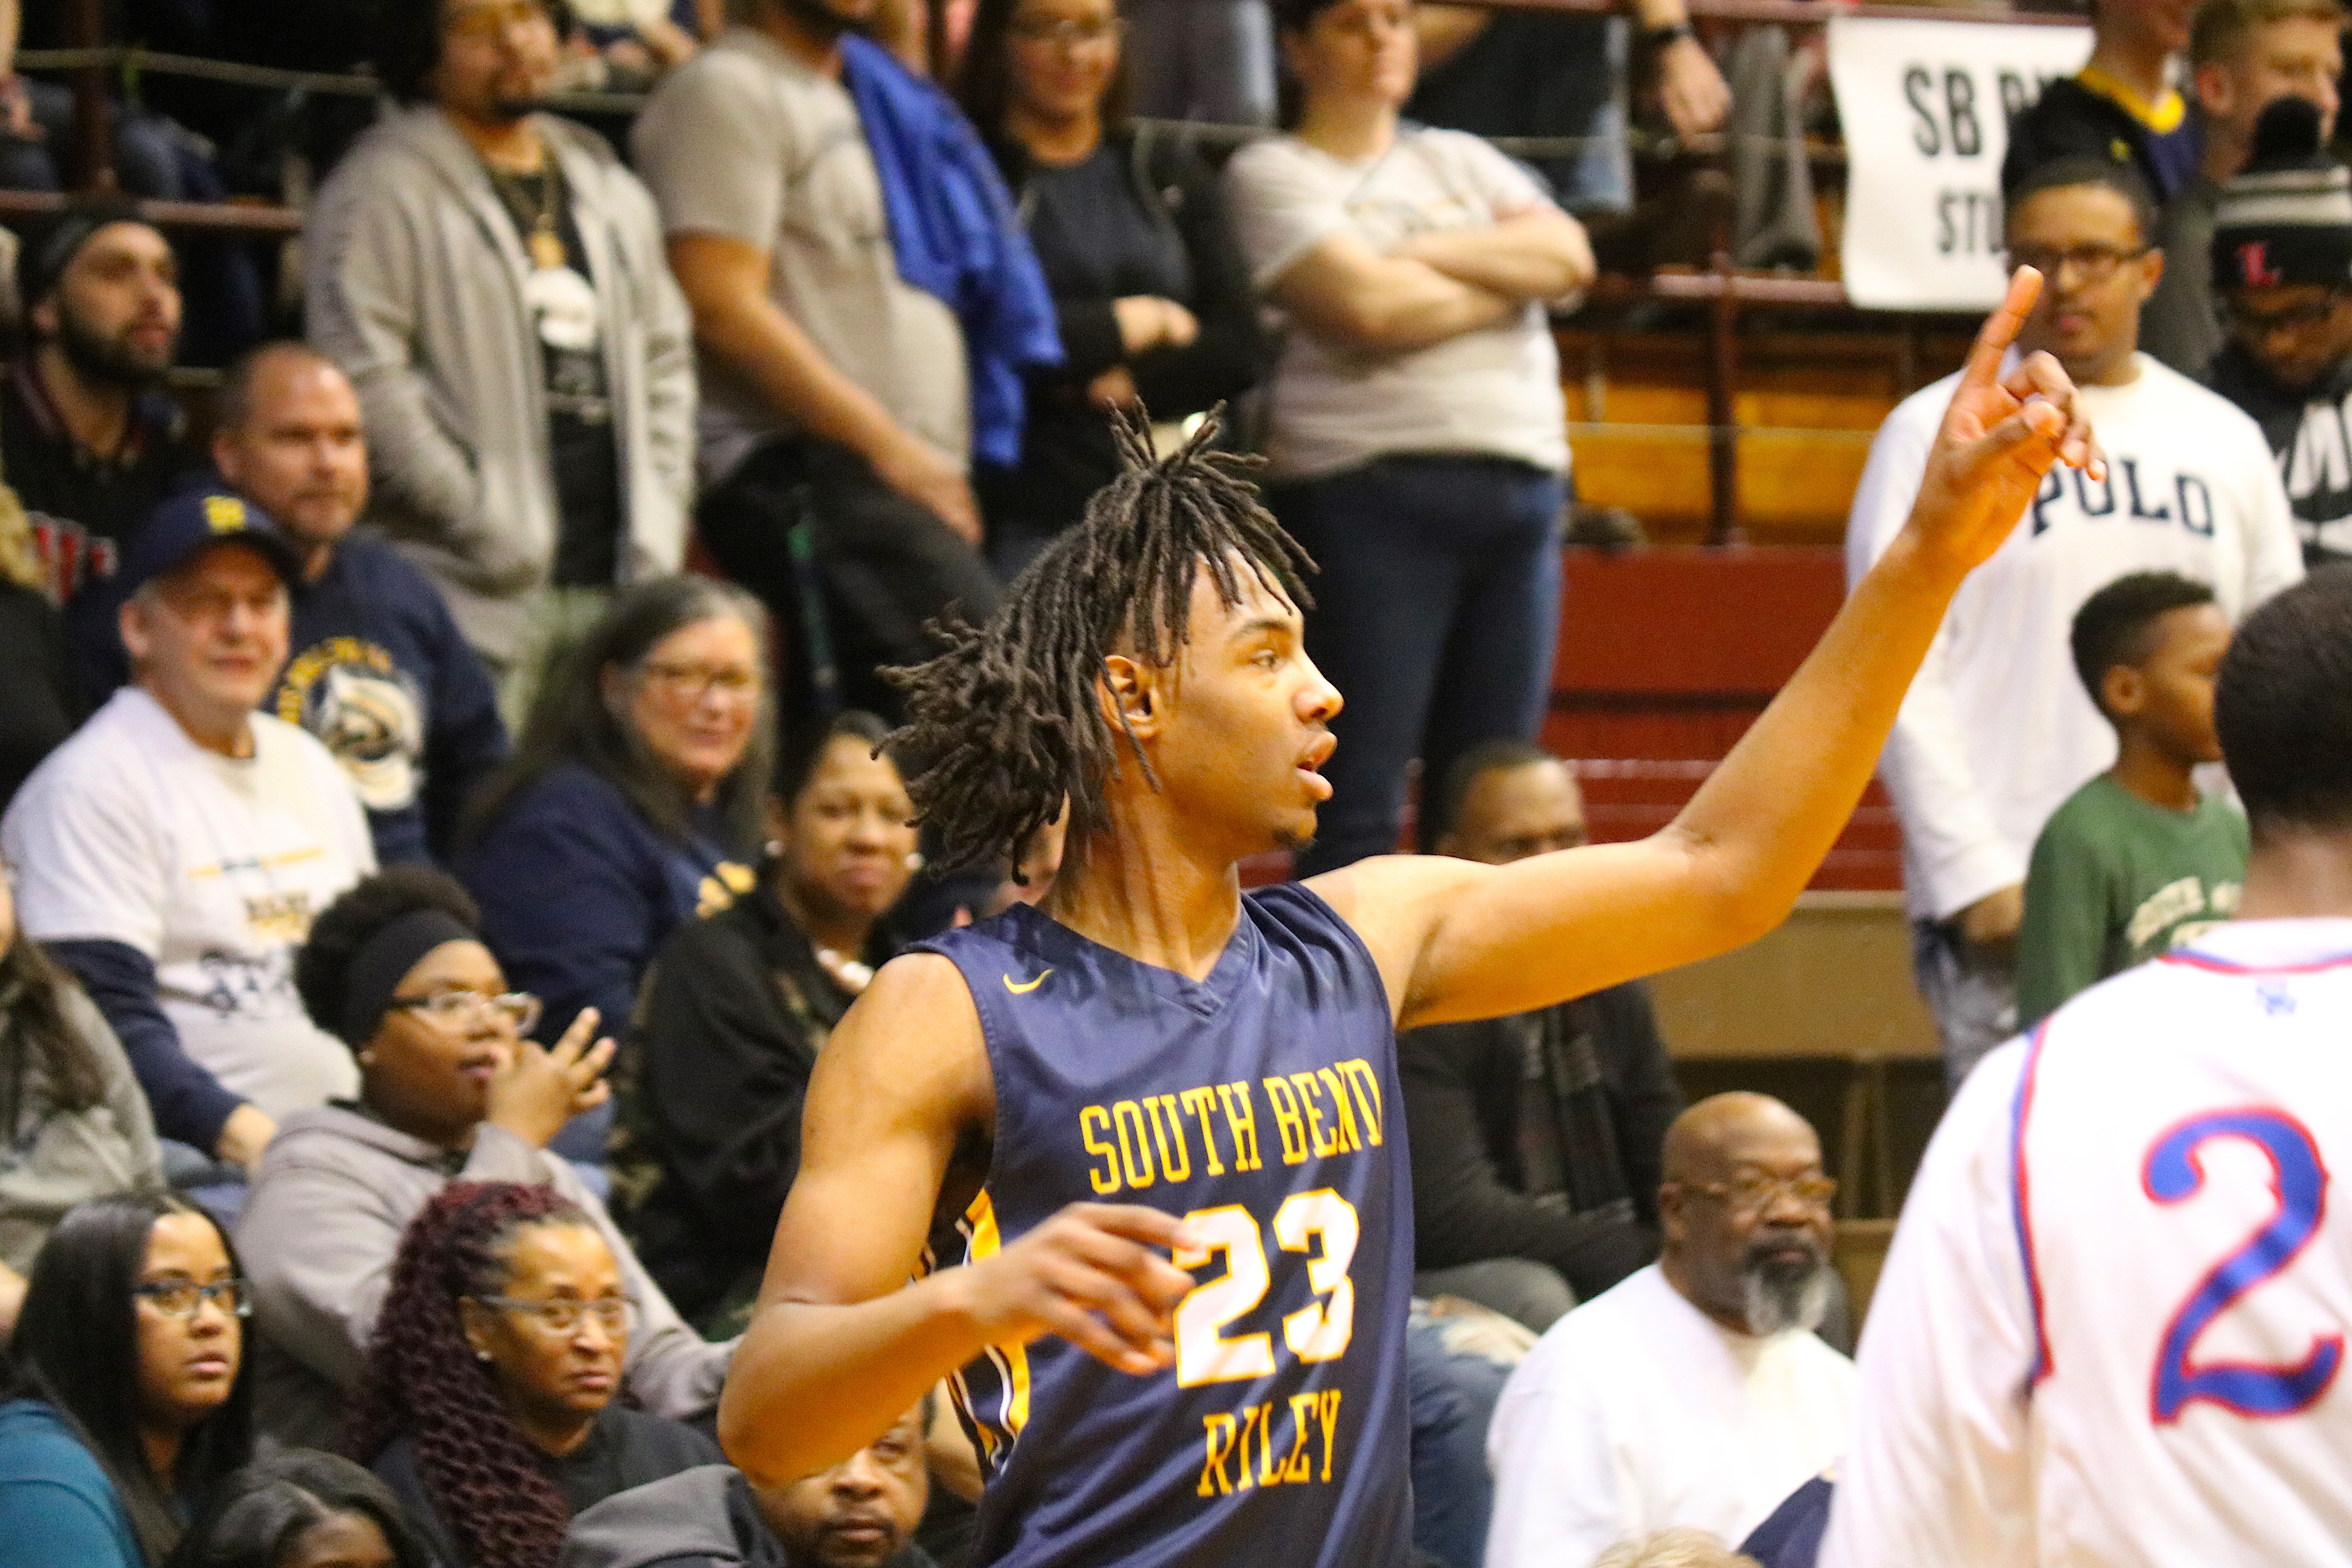 SB Tribune Article: Anderson named Indiana All-Star